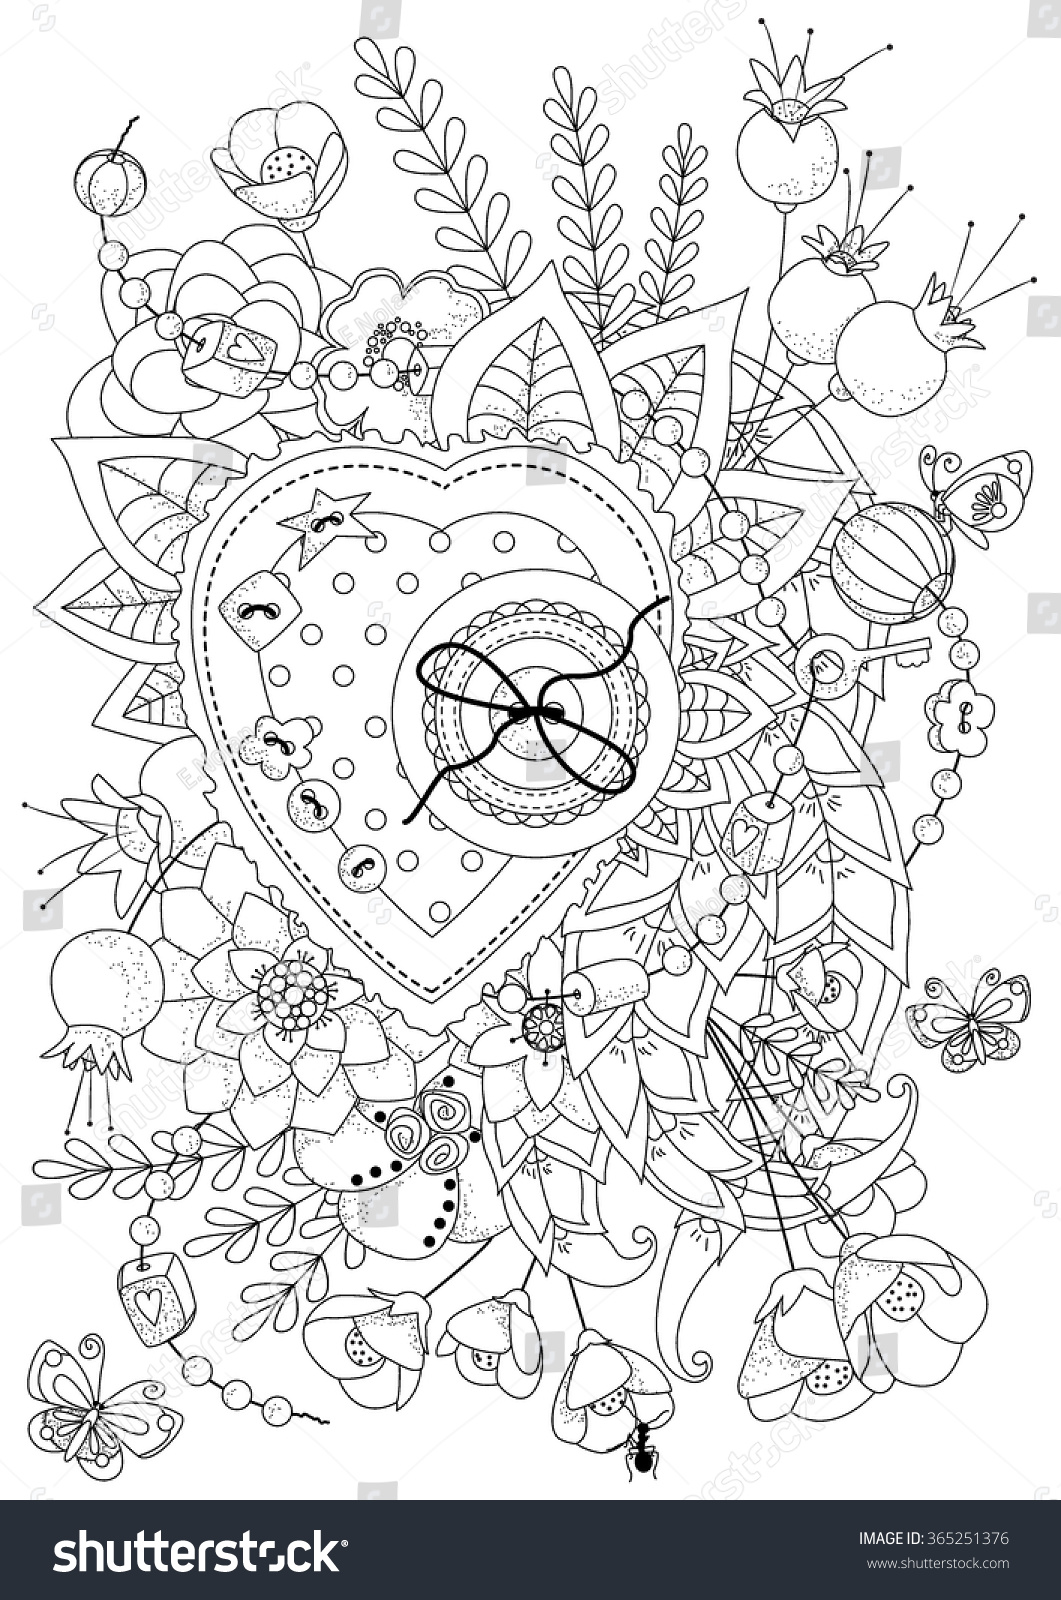 stock vector coloring book for adult and older children vector illustration coloring page valentine s day